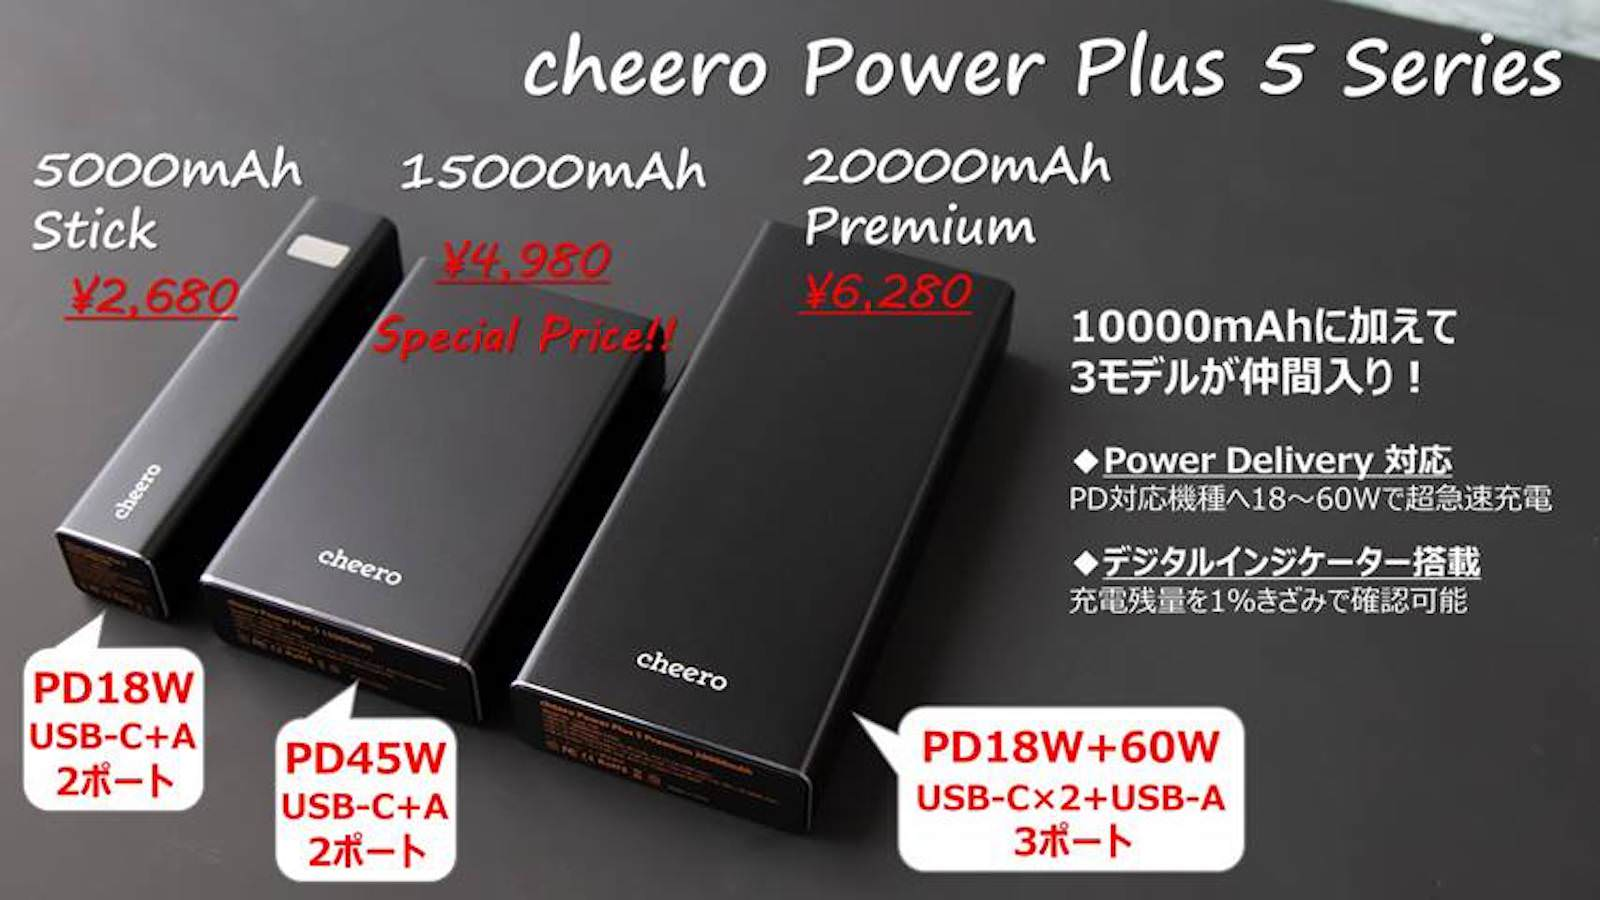 Cheero power plus 5 new series